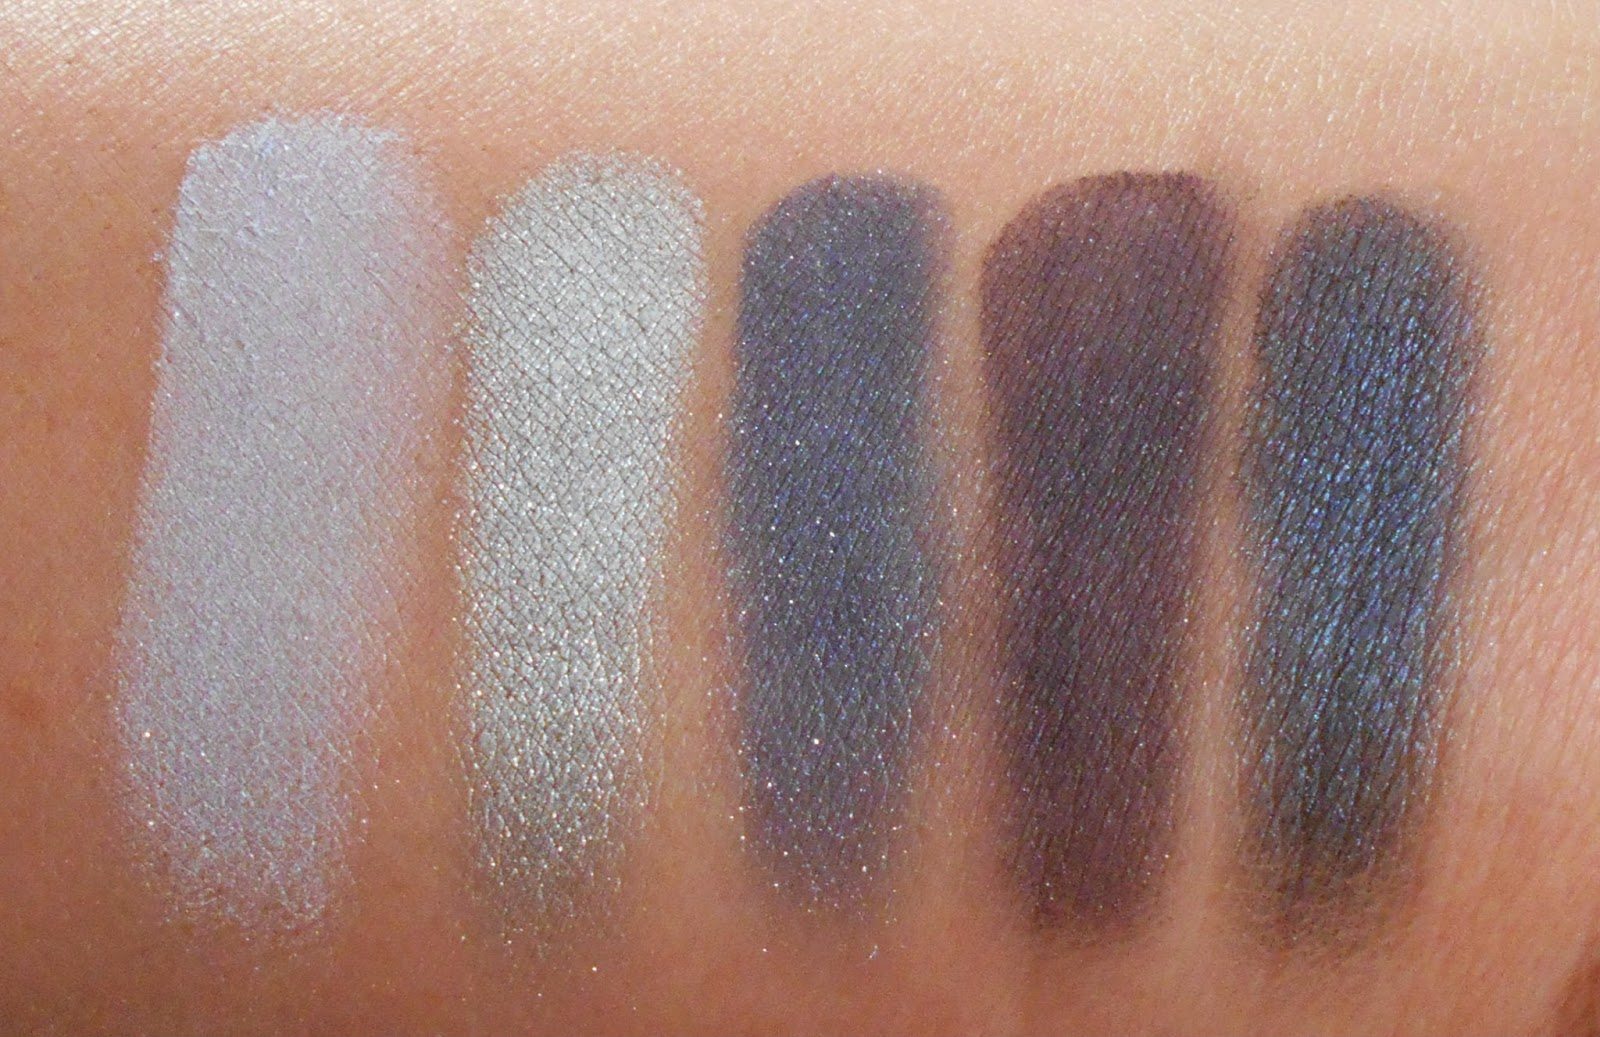 Wet n Wild Fall 2014 Limited Edition Eyeshadow Palette in High Waisted Jeans